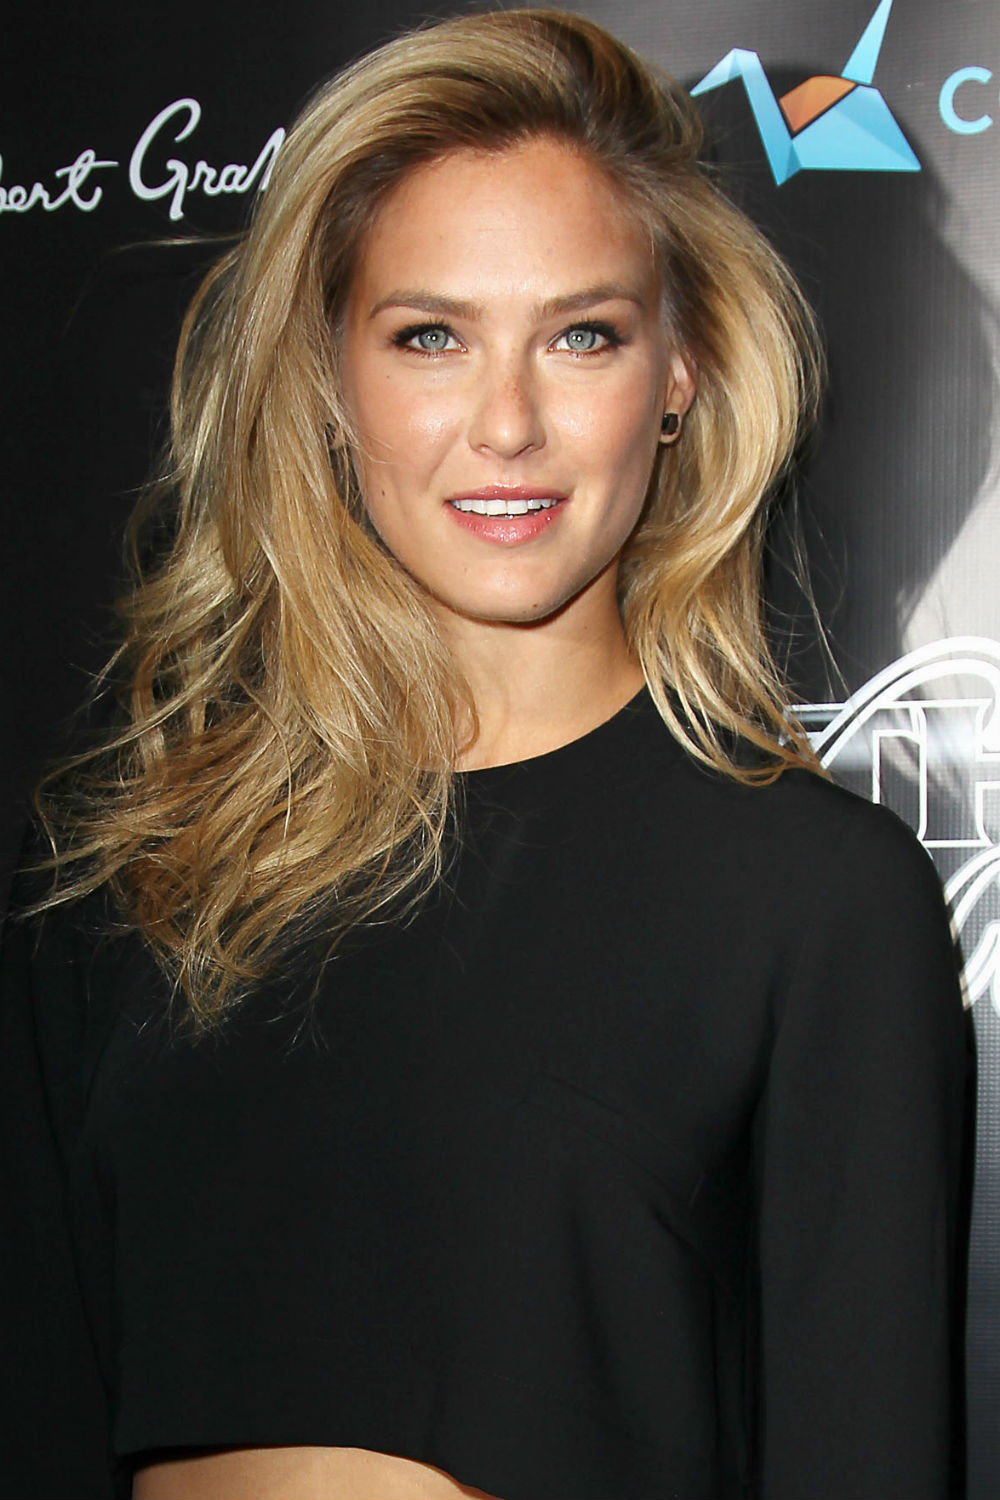 Bar Refaeli Gets A Gol... Bar Refaeli